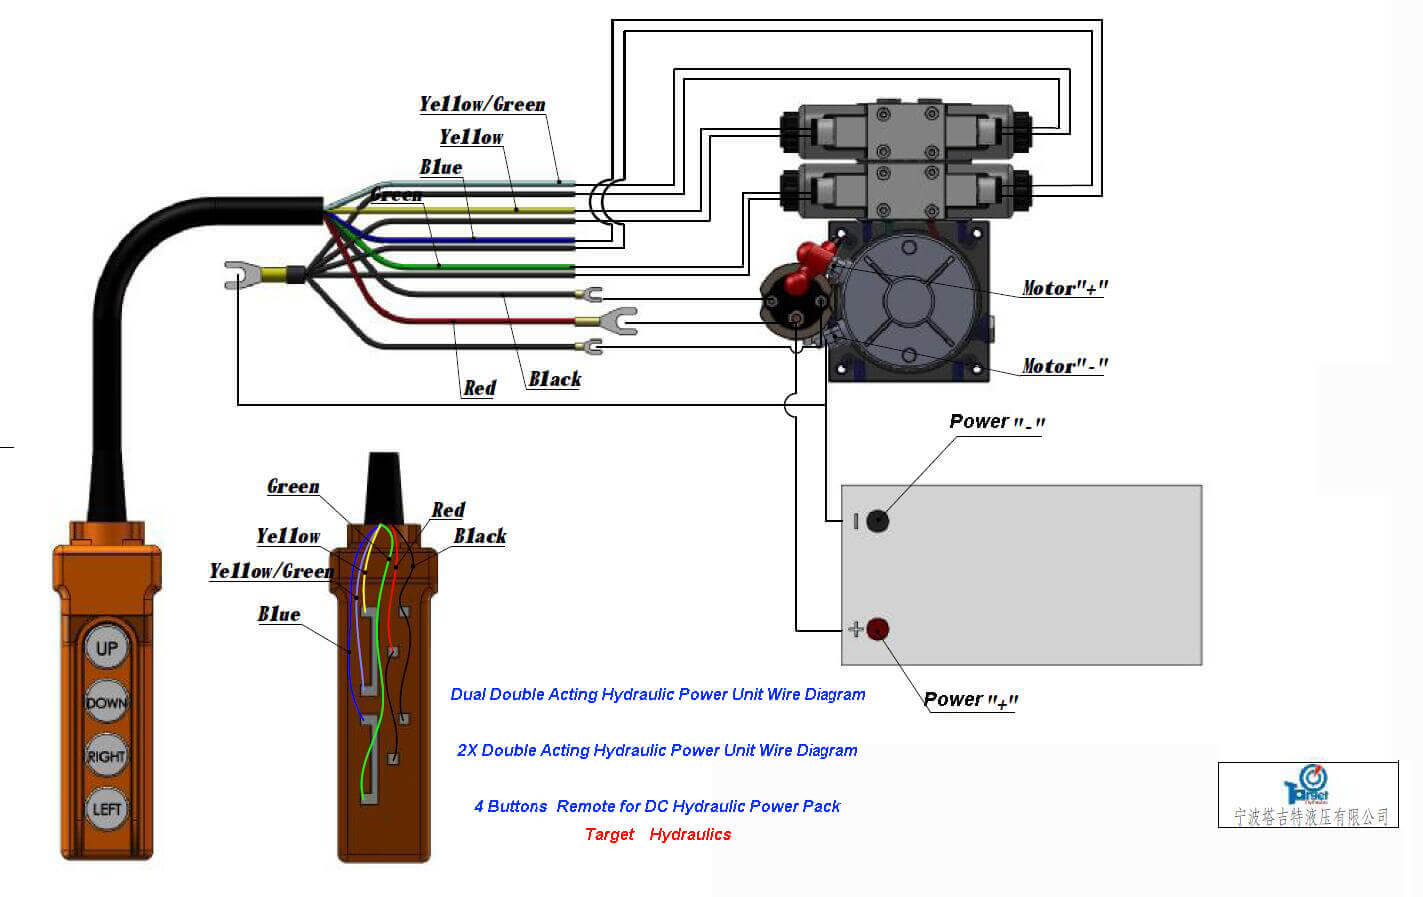 How To Wire Hydraulic Power Packpower Unit Diagram Design Of The Switch For You Attached With Motor Wiring Dc Double Acting Pack Dual Cylinder Units